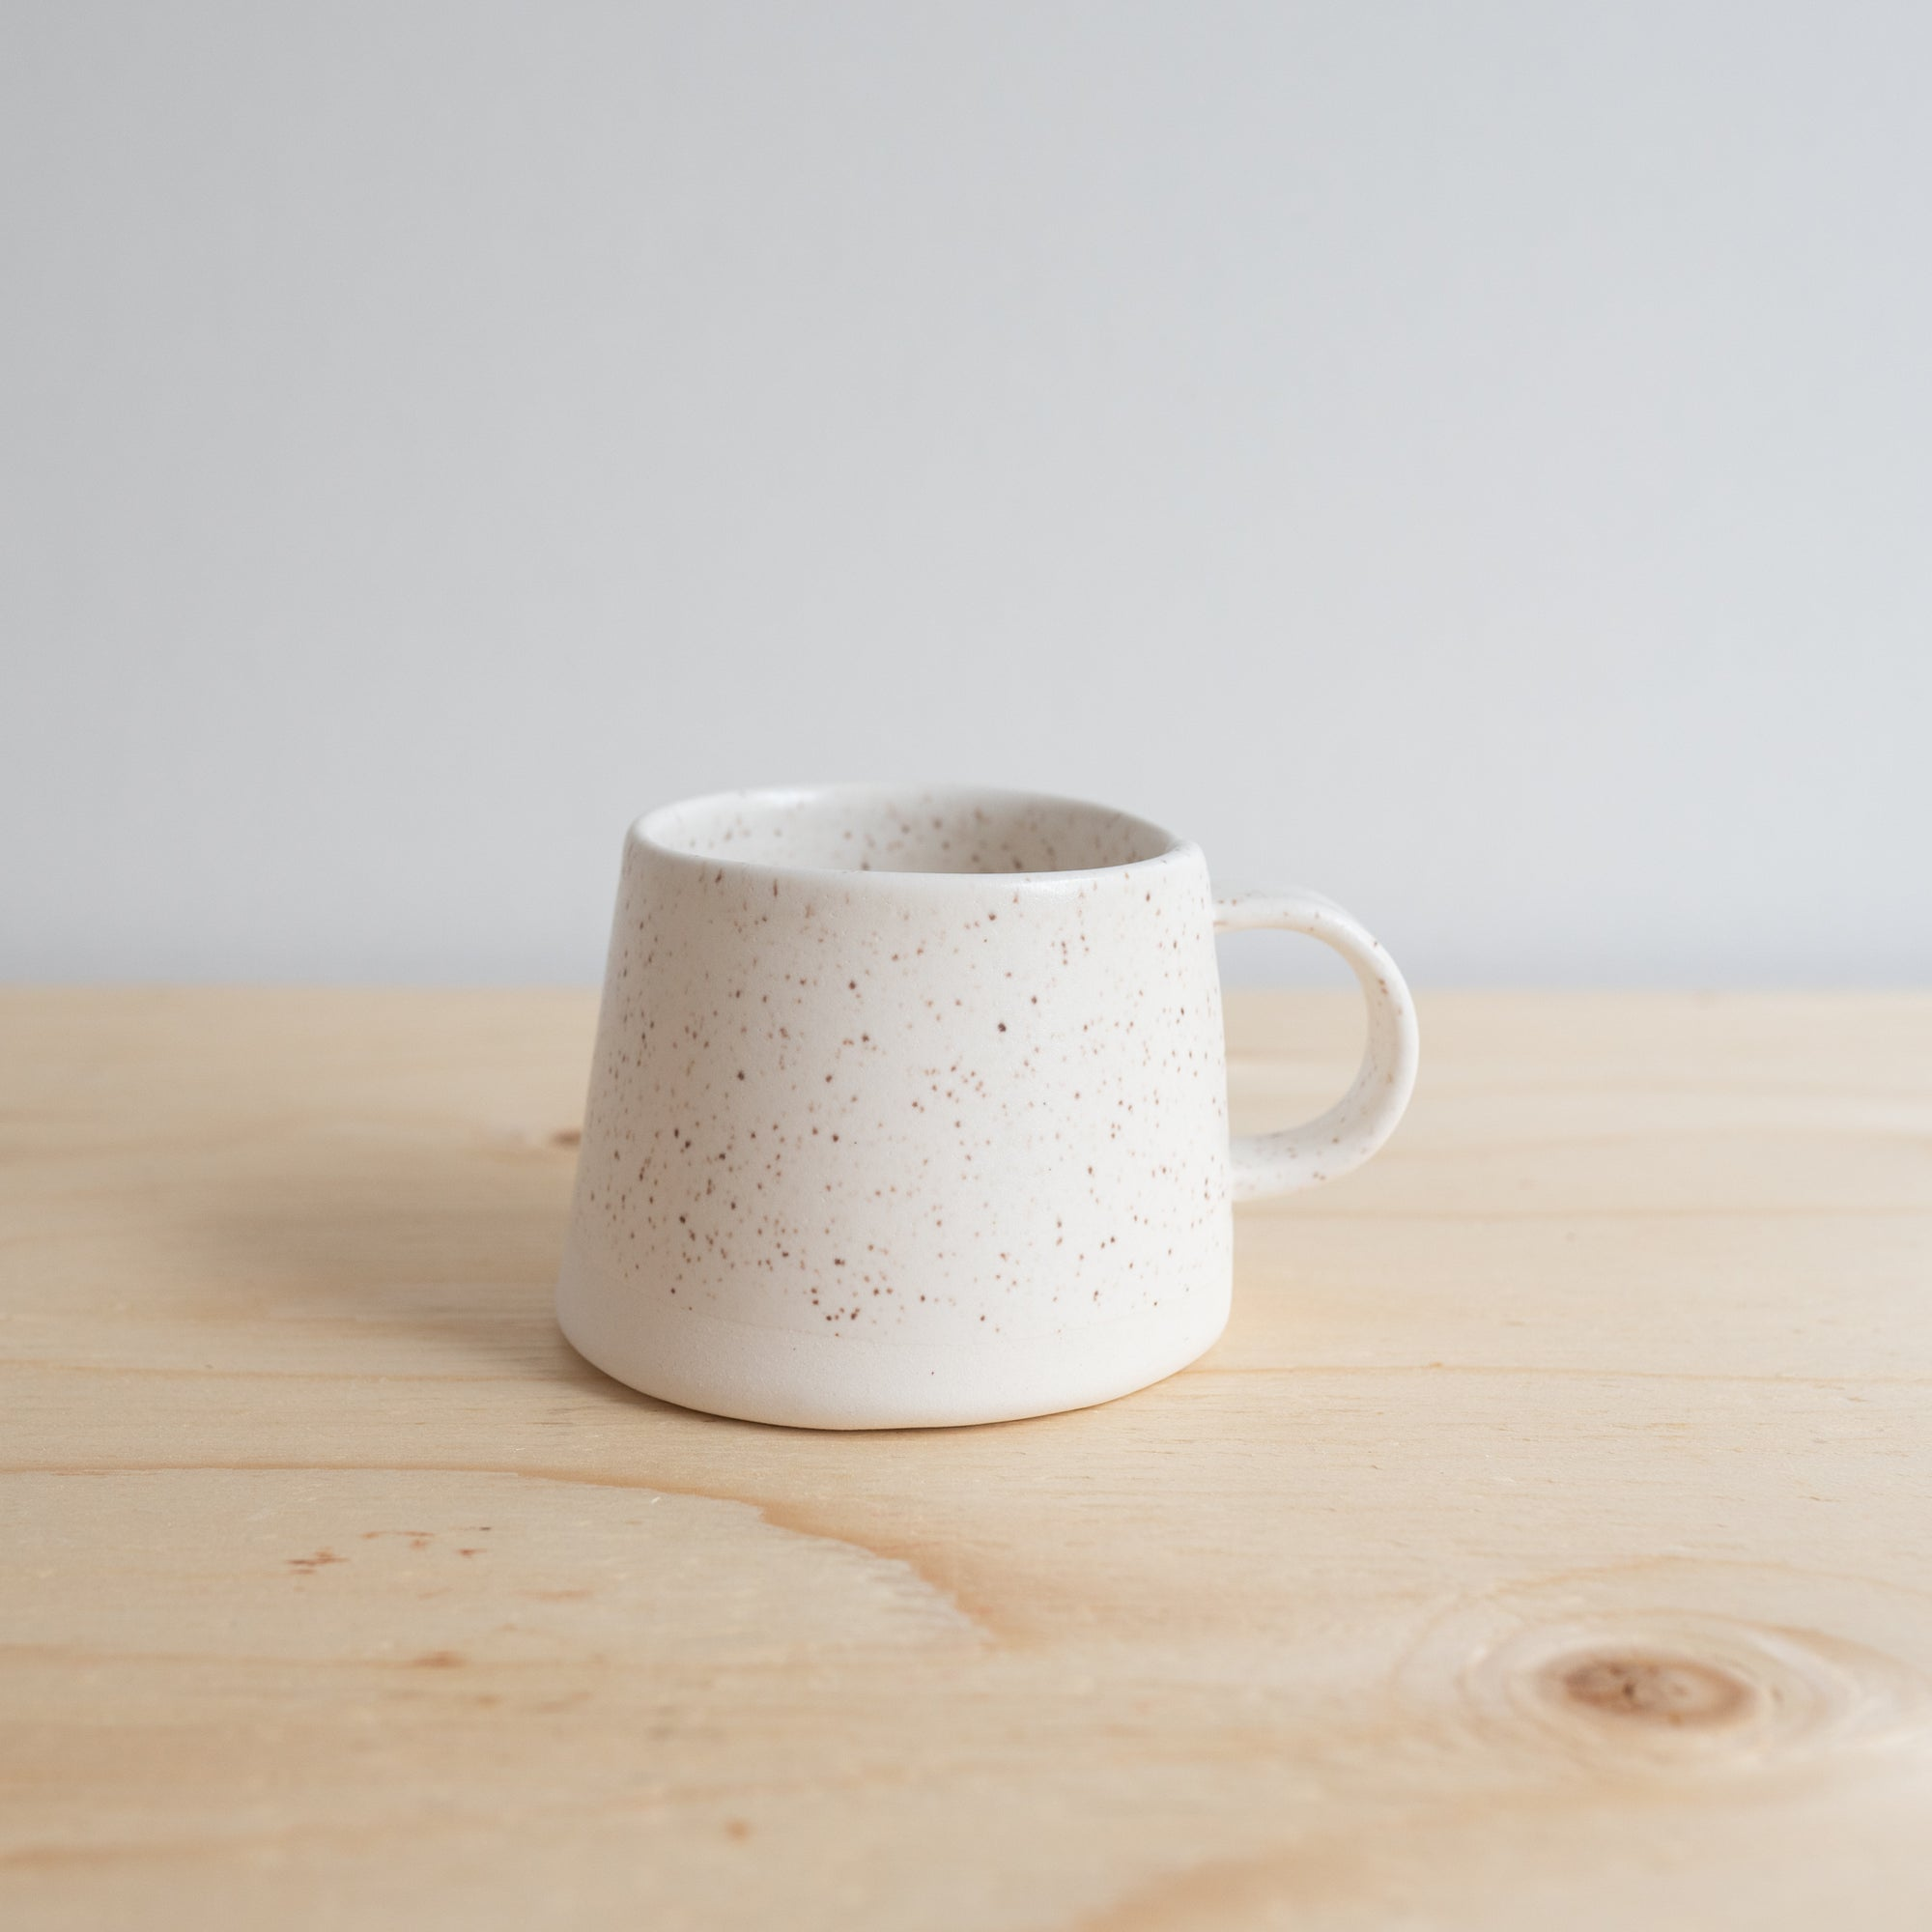 Speckle White Satin Mug by Atelier Make - Rug & Weave